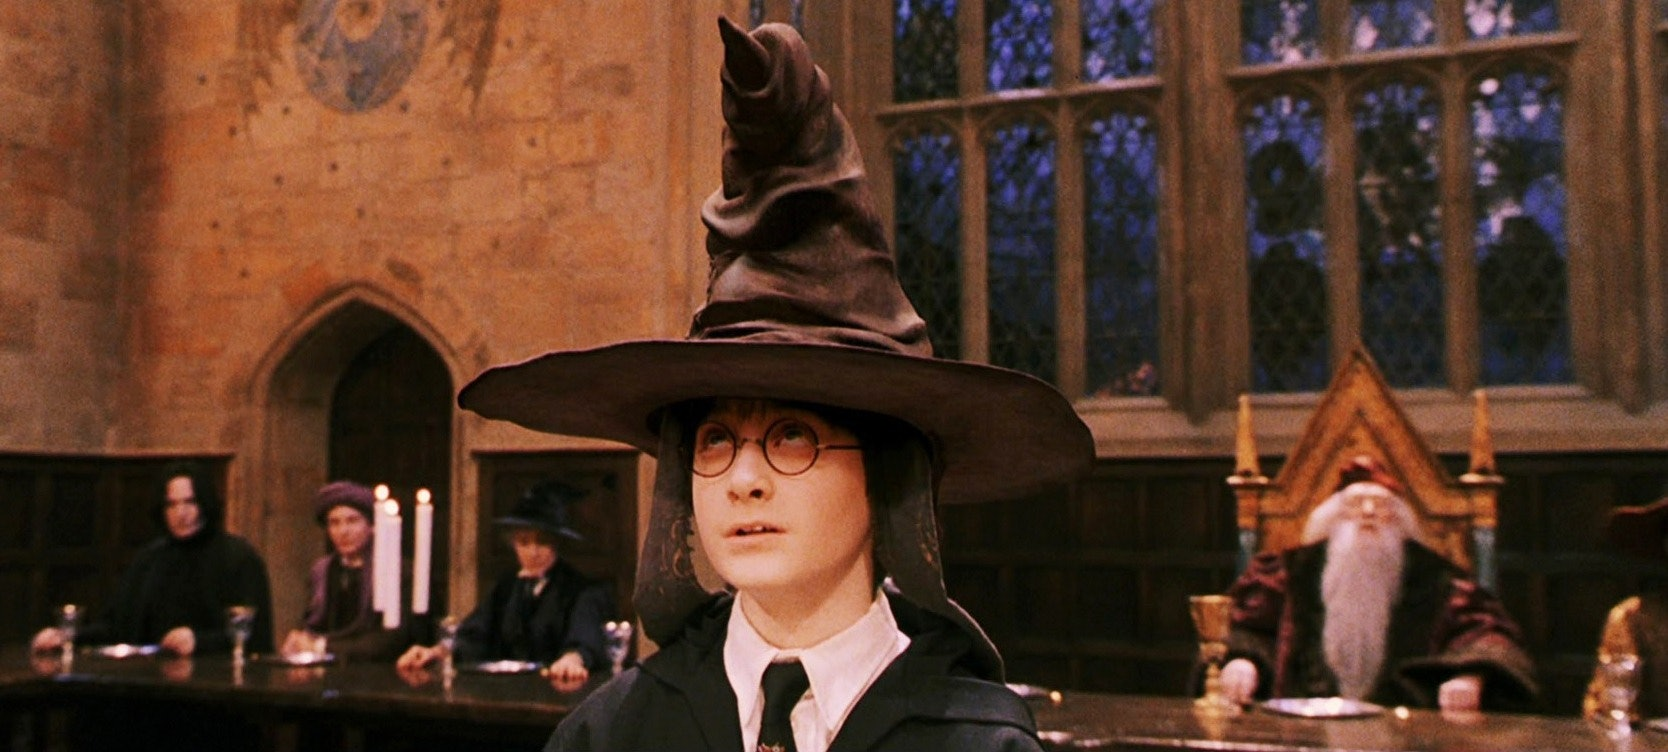 The One Question That Will Determine Which Hogwarts House You Belong In